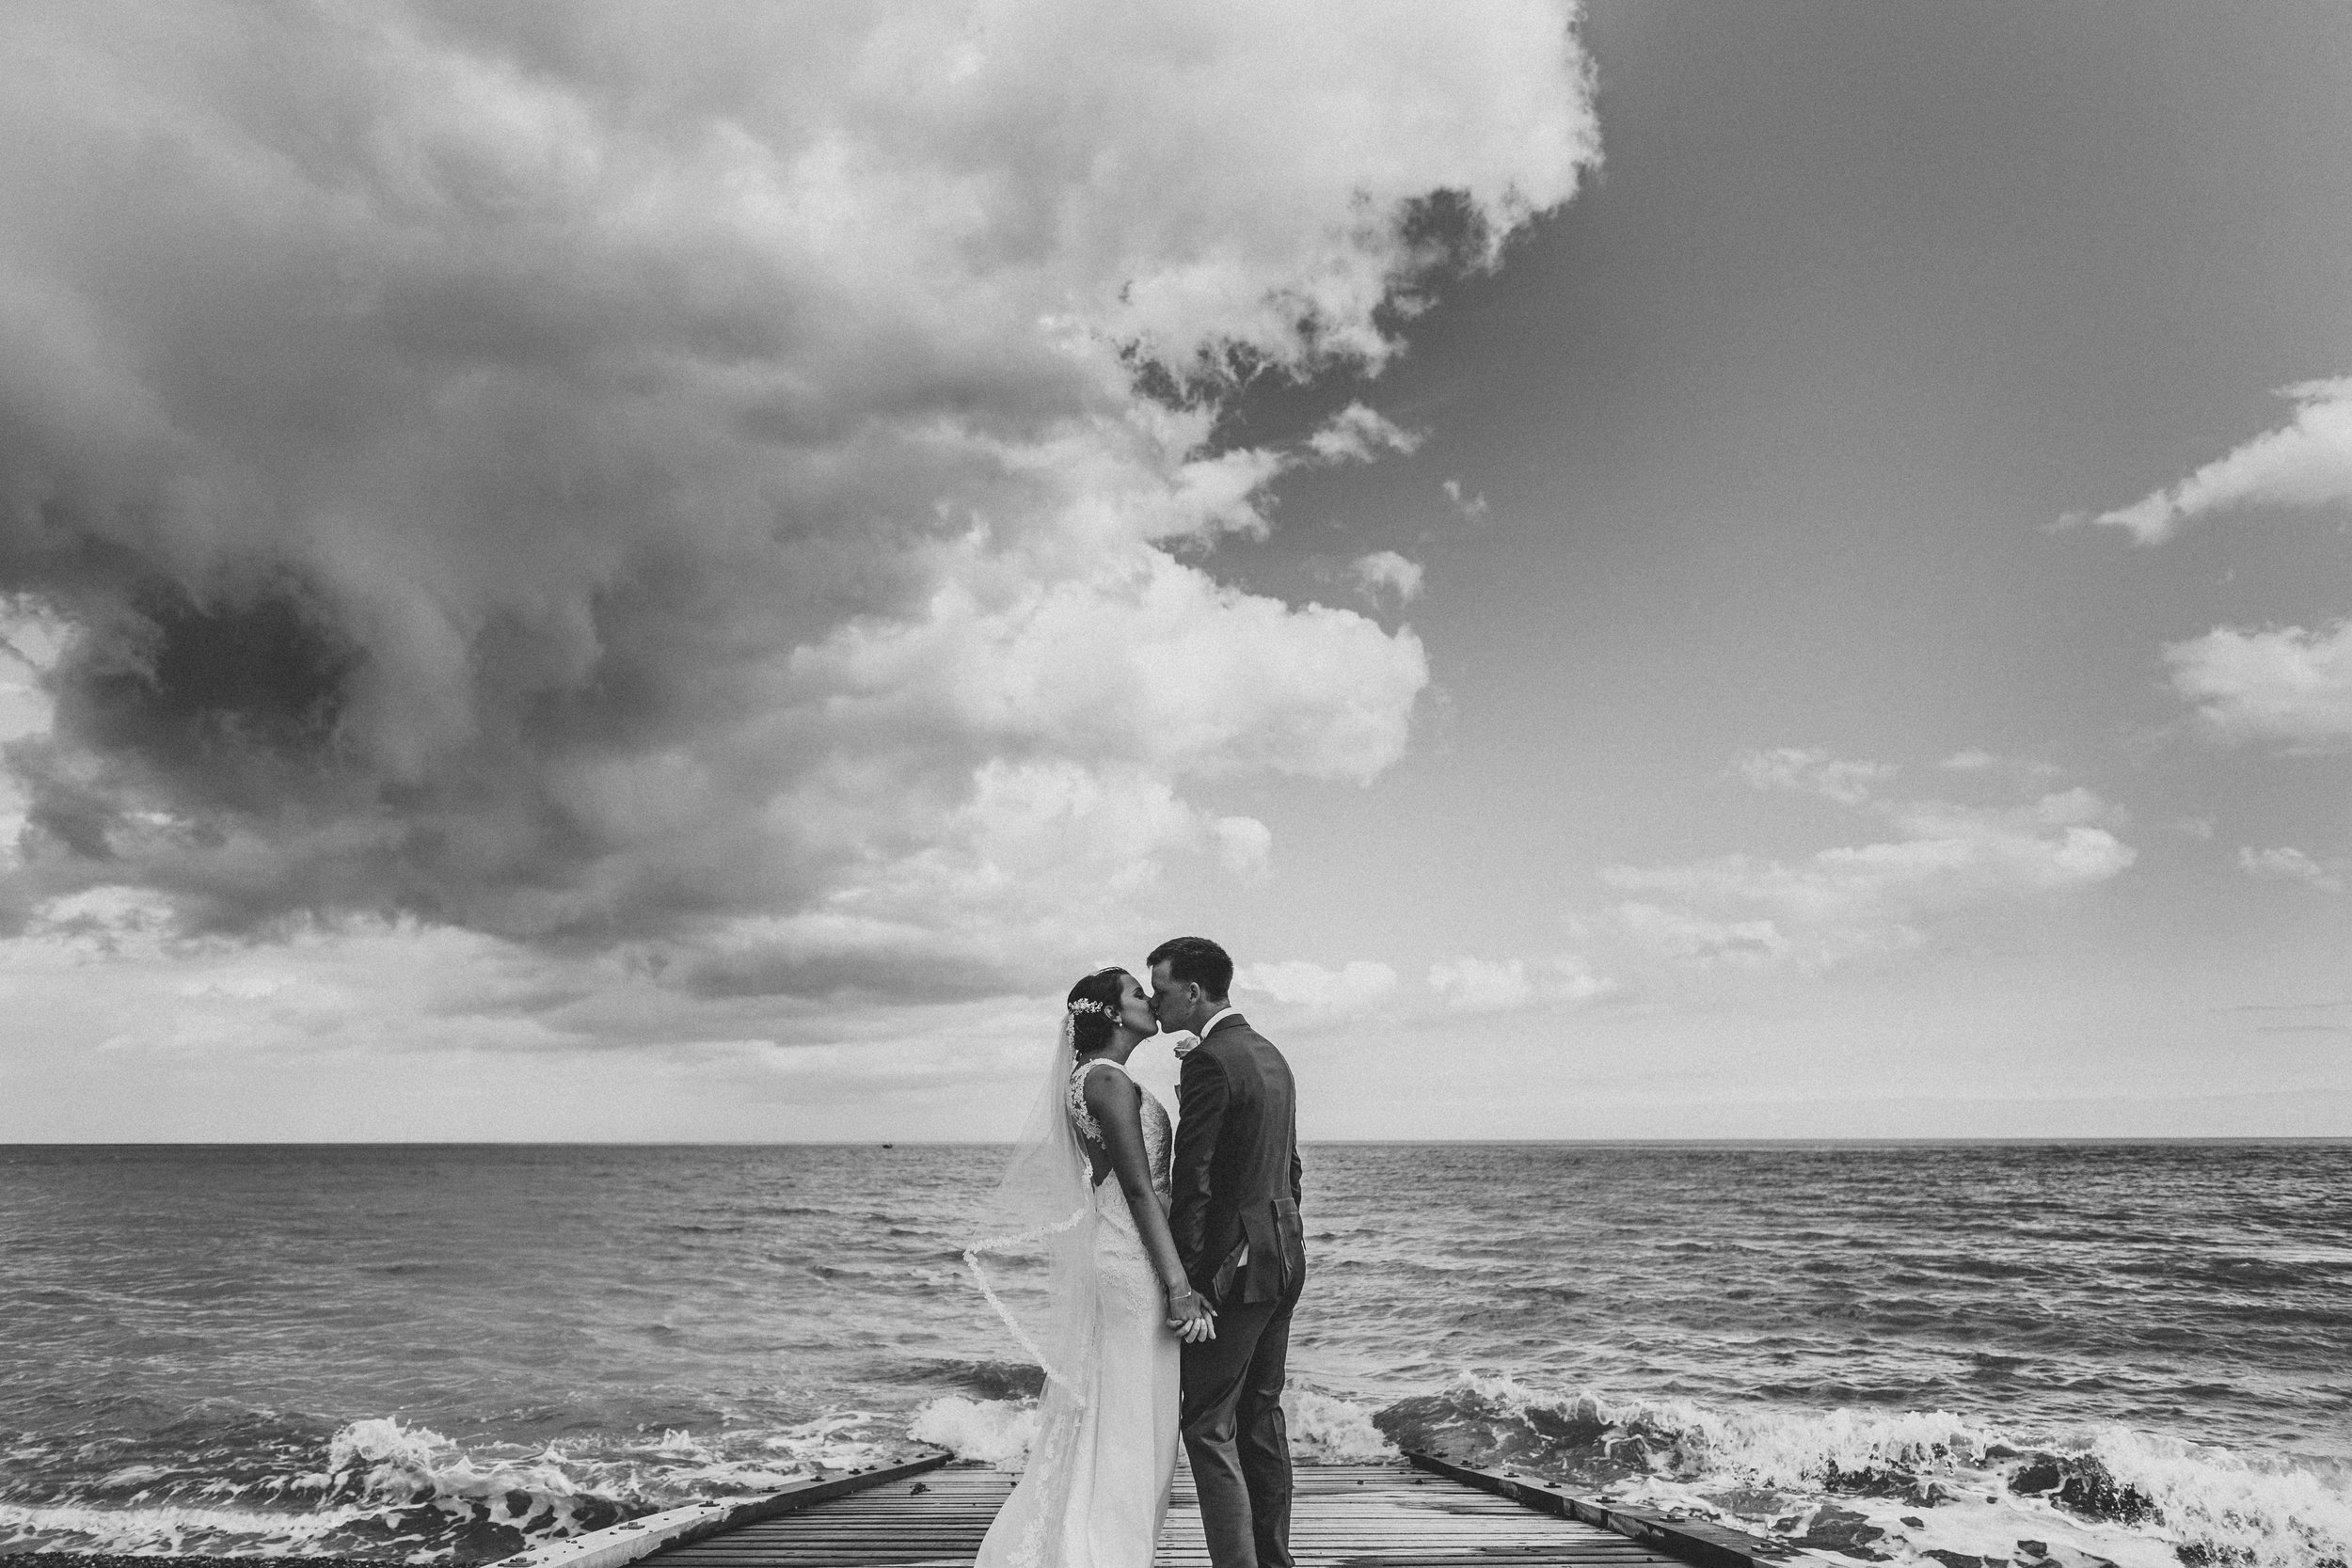 The couple and the sea